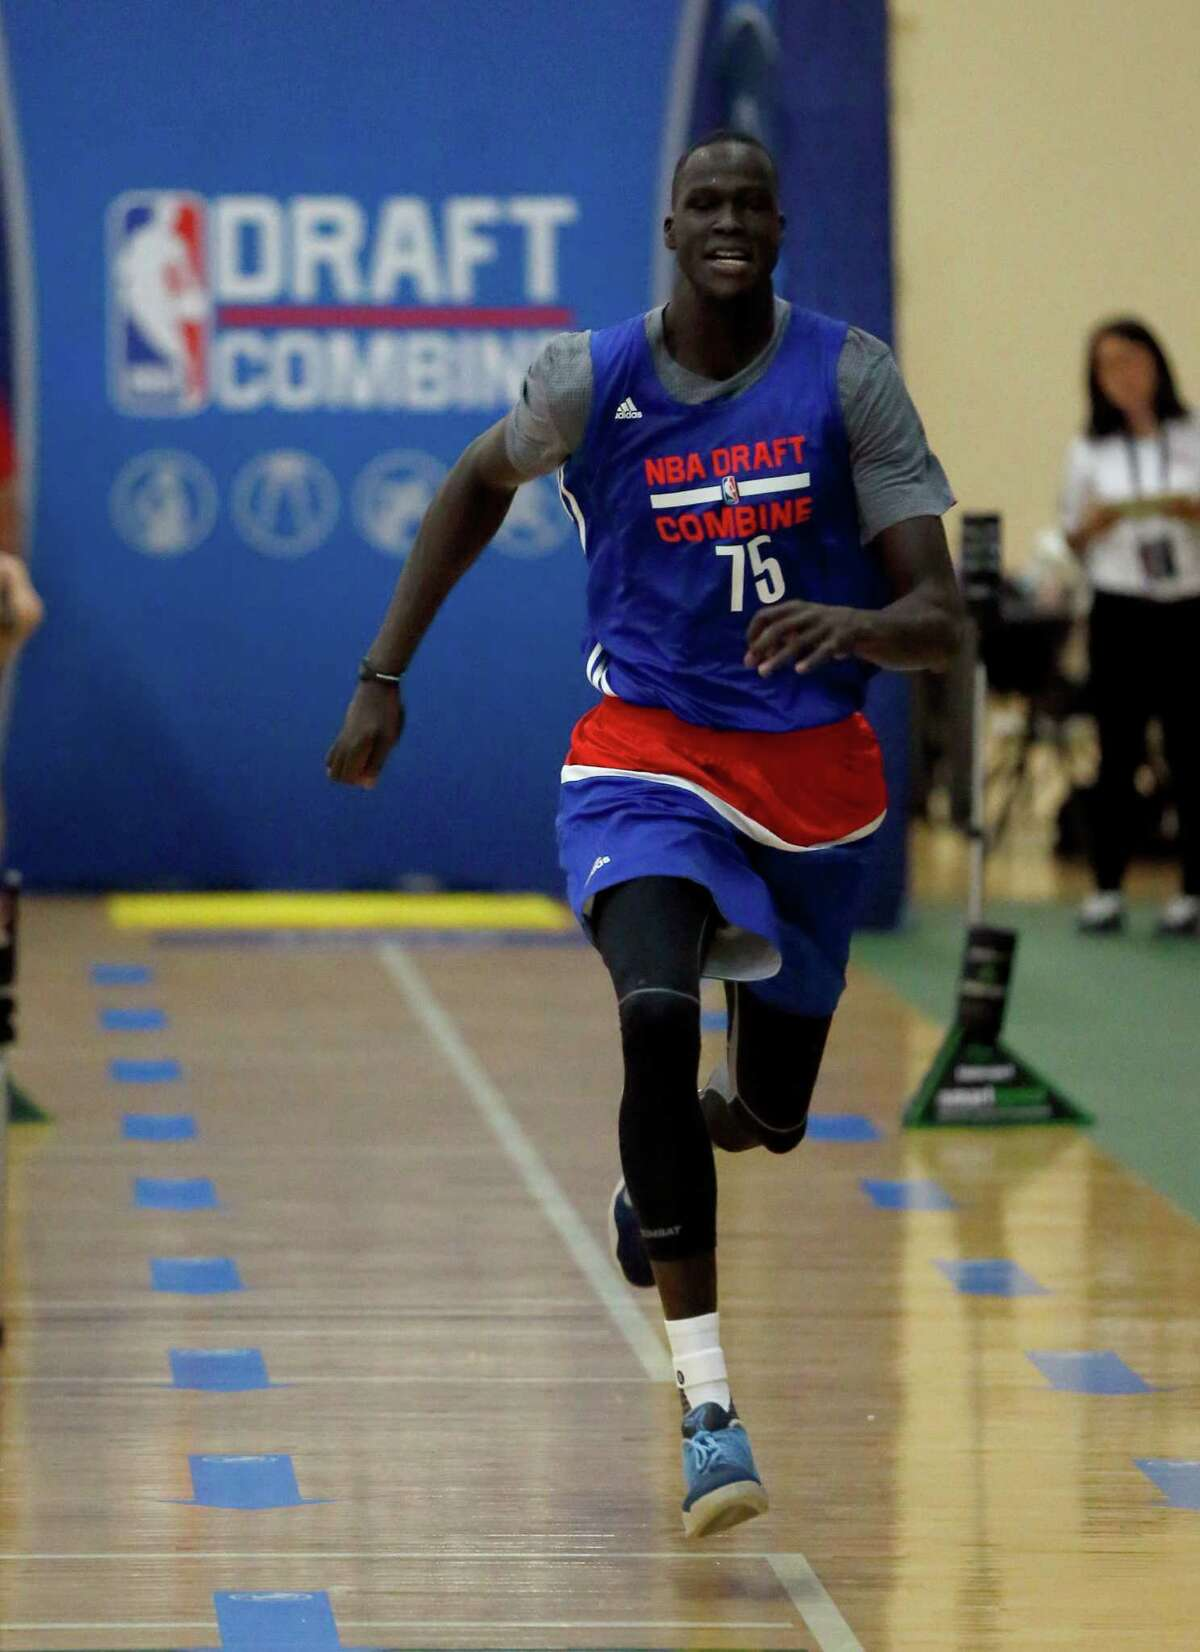 Thon Maker, from Orangeville Prep-Athlete Institute, participates in the NBA draft basketball combine Friday, May 13, 2016, in Chicago. (AP Photo/Charles Rex Arbogast)